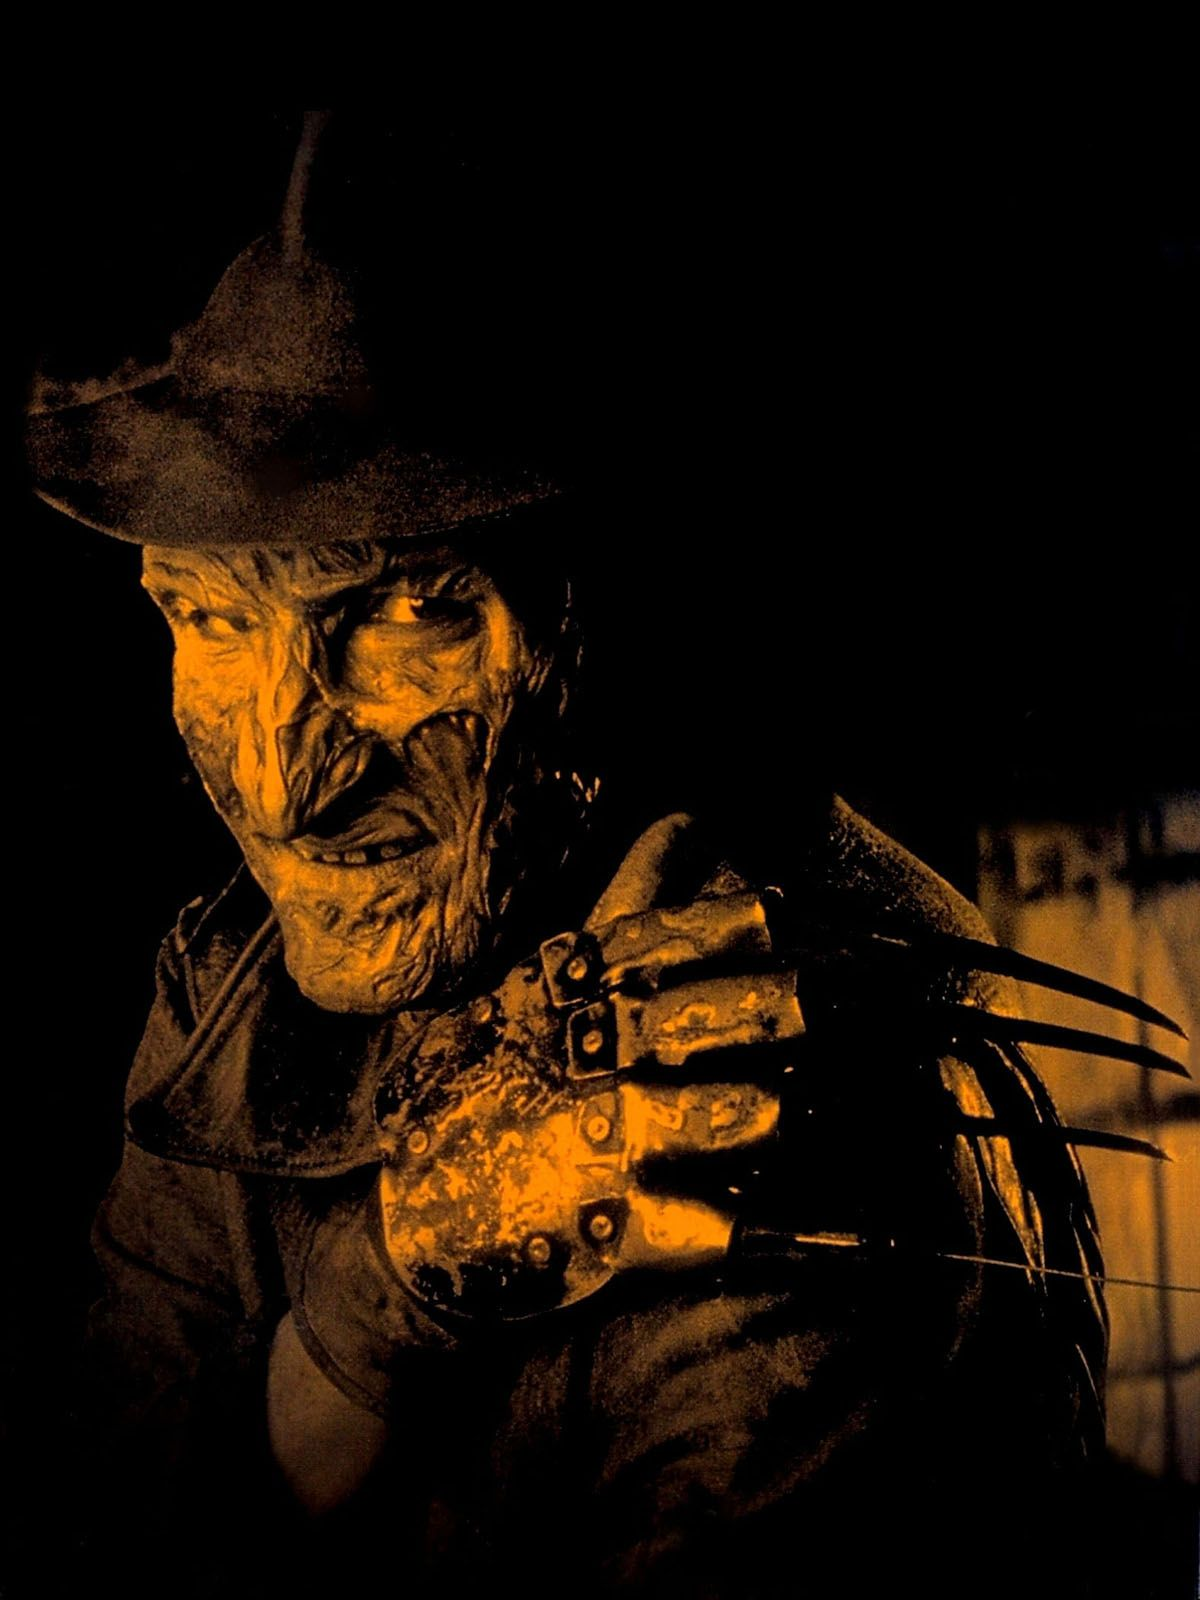 Freddy Krueger Live Wallpaper Fitrinis Wallpaper